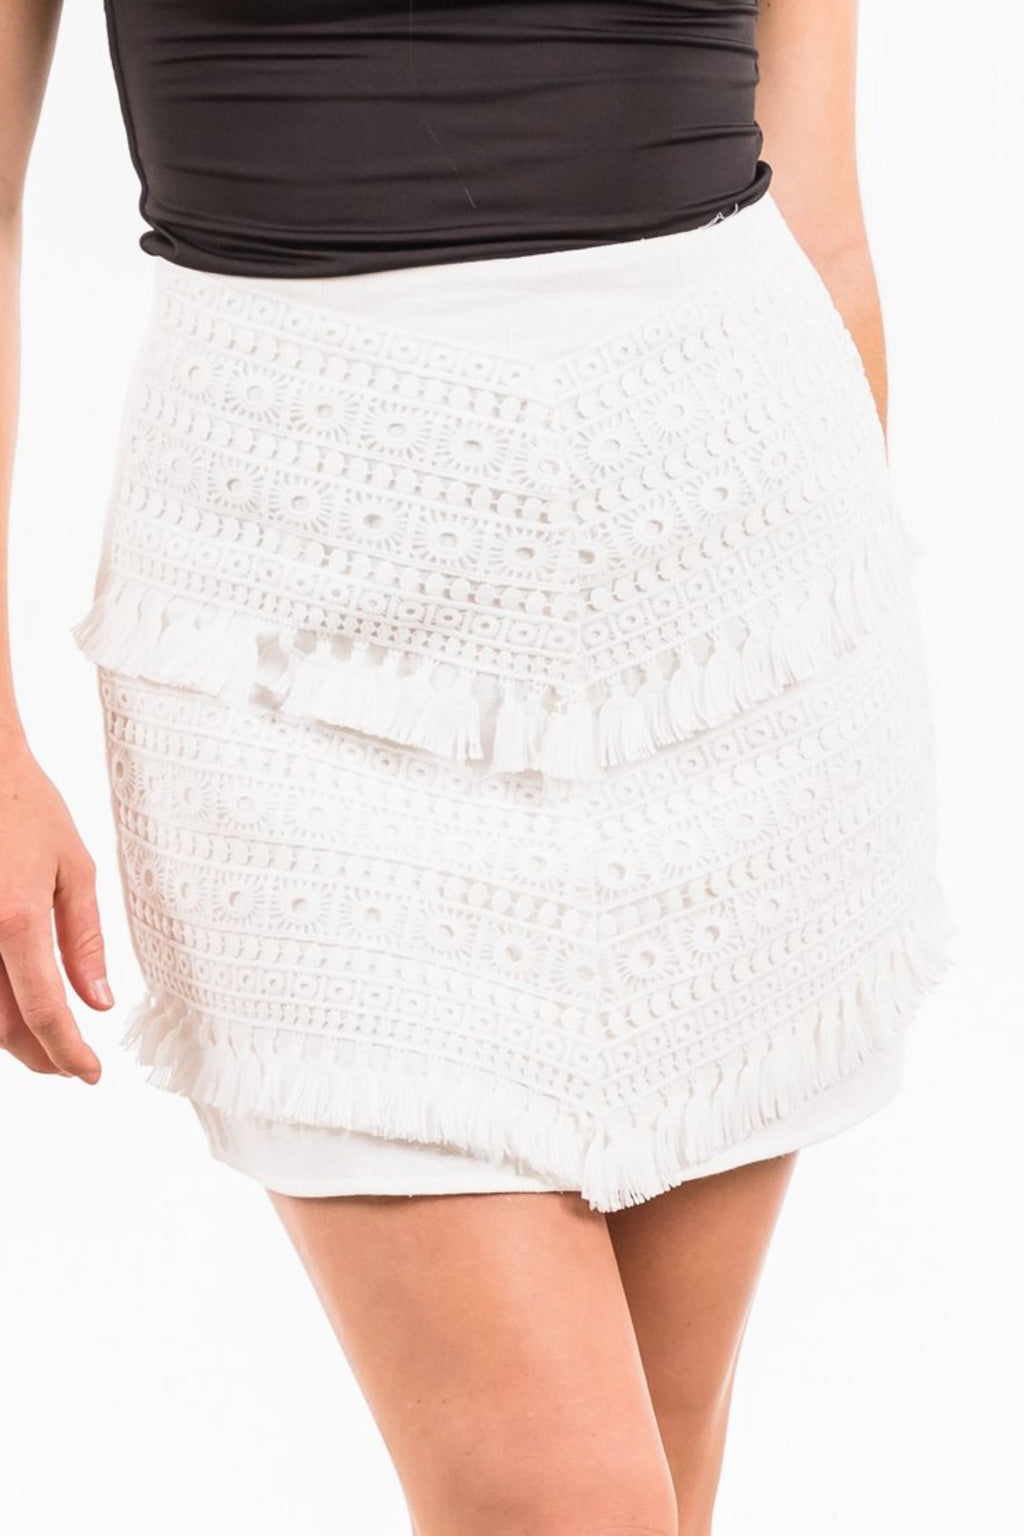 Clovelly Skirt - White